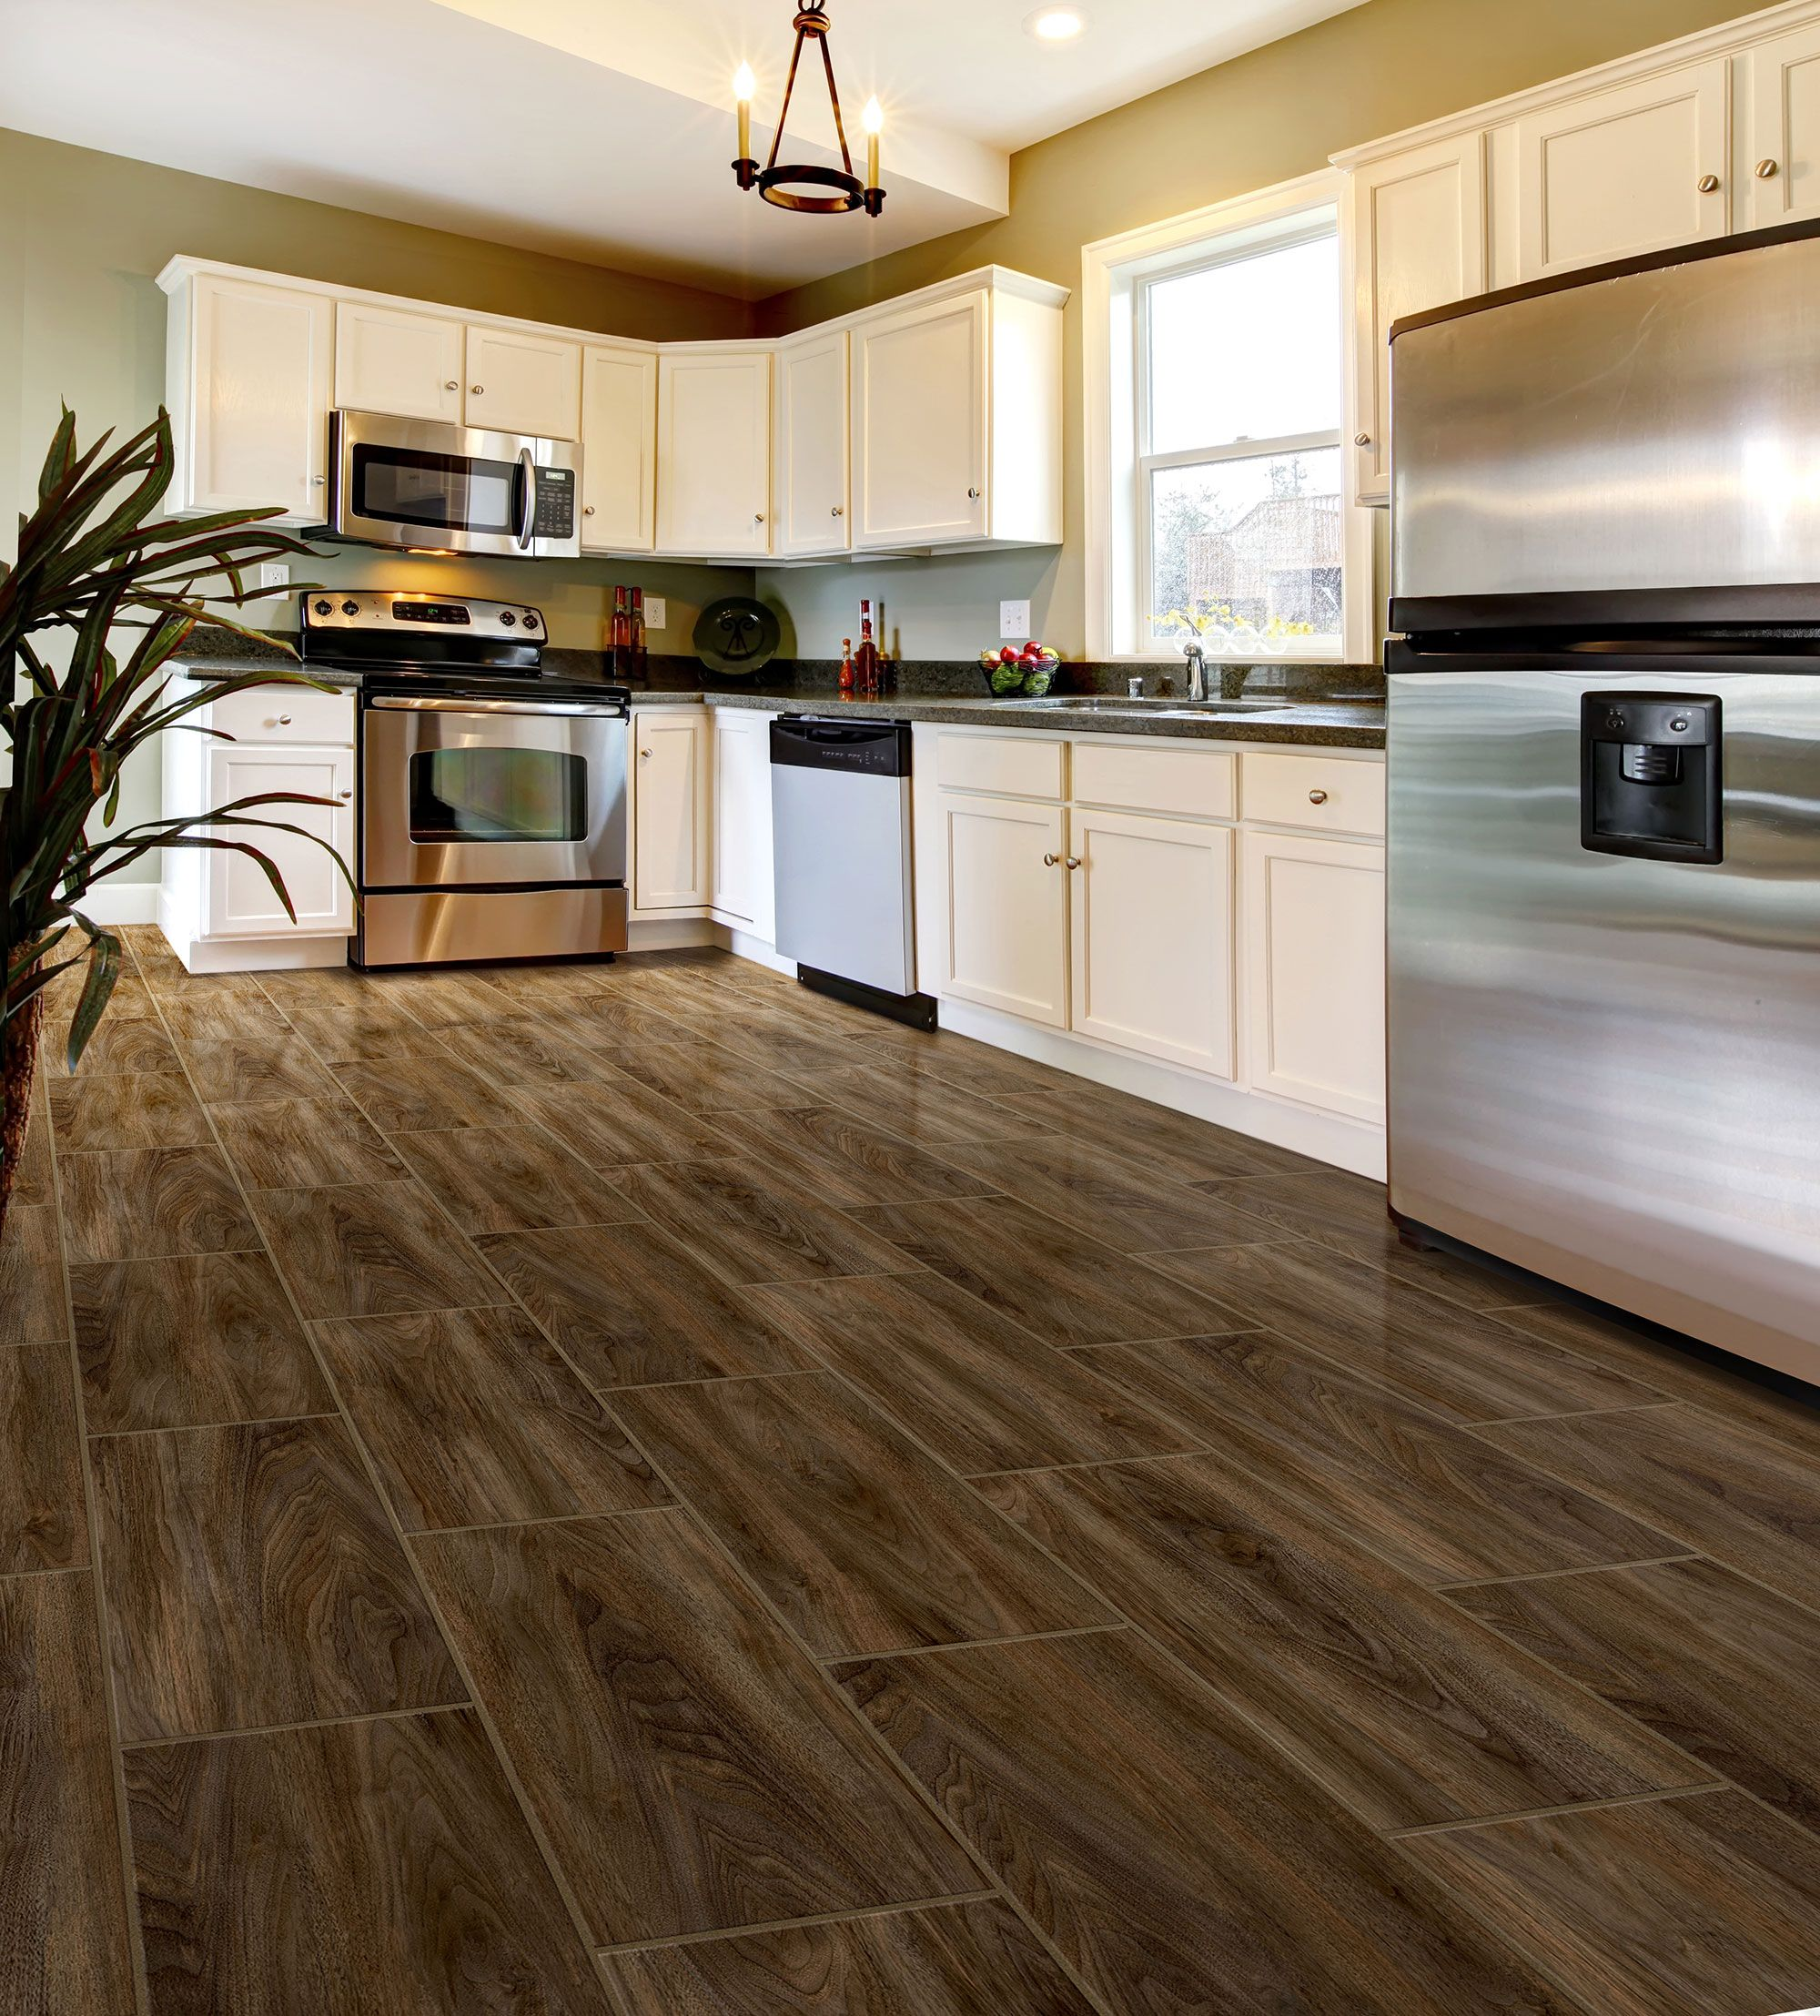 Walnut Floor Kitchen Walnut Grove Kokutan Congoleum Duraceramic Luxury Vinyl